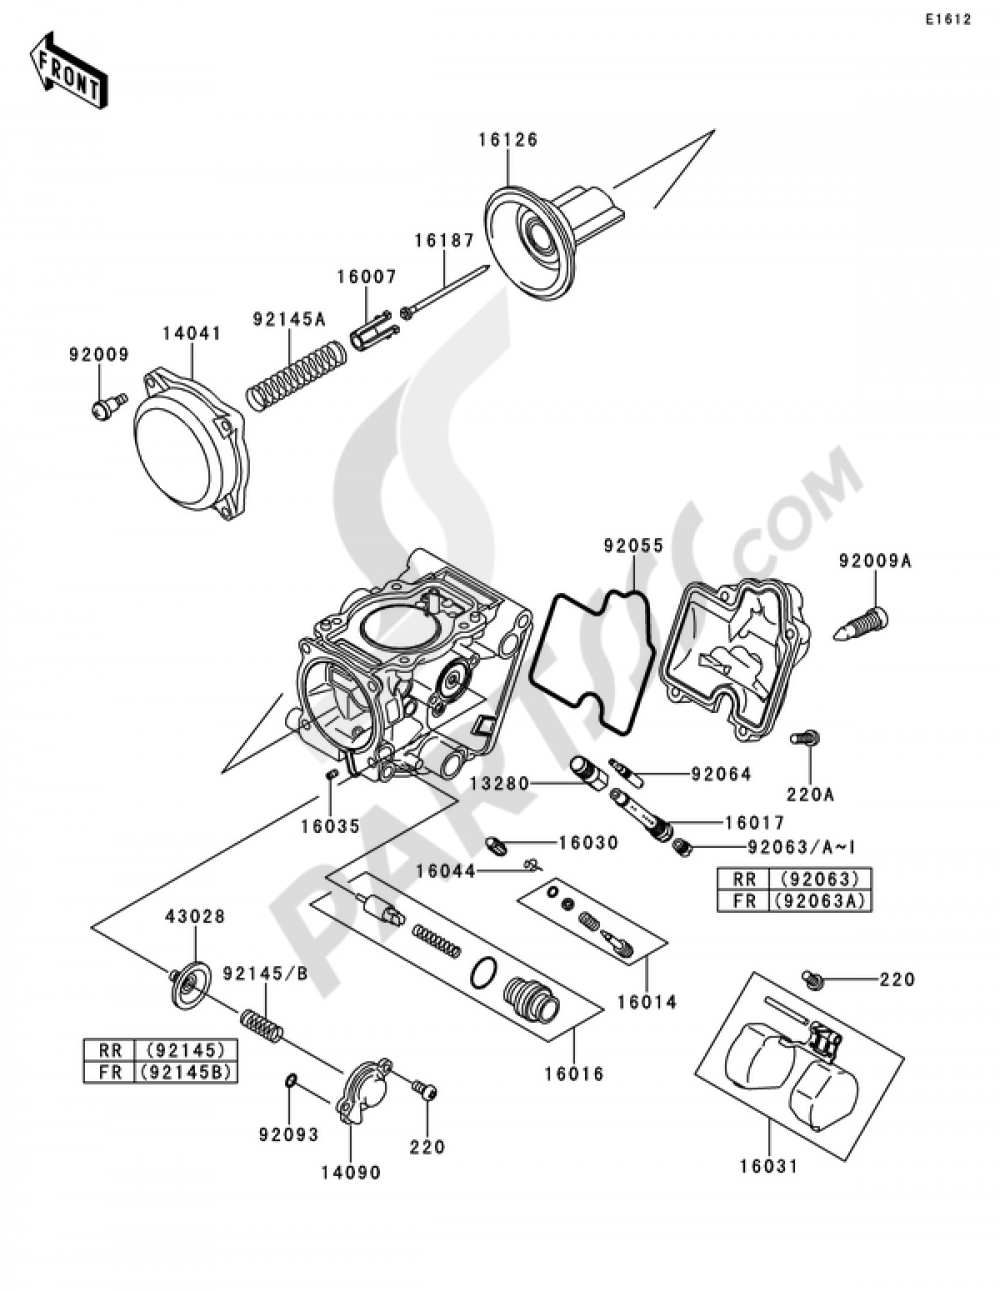 Carburetor Parts1 2 Kawasaki Kfx700 2011 220 Engine Diagram